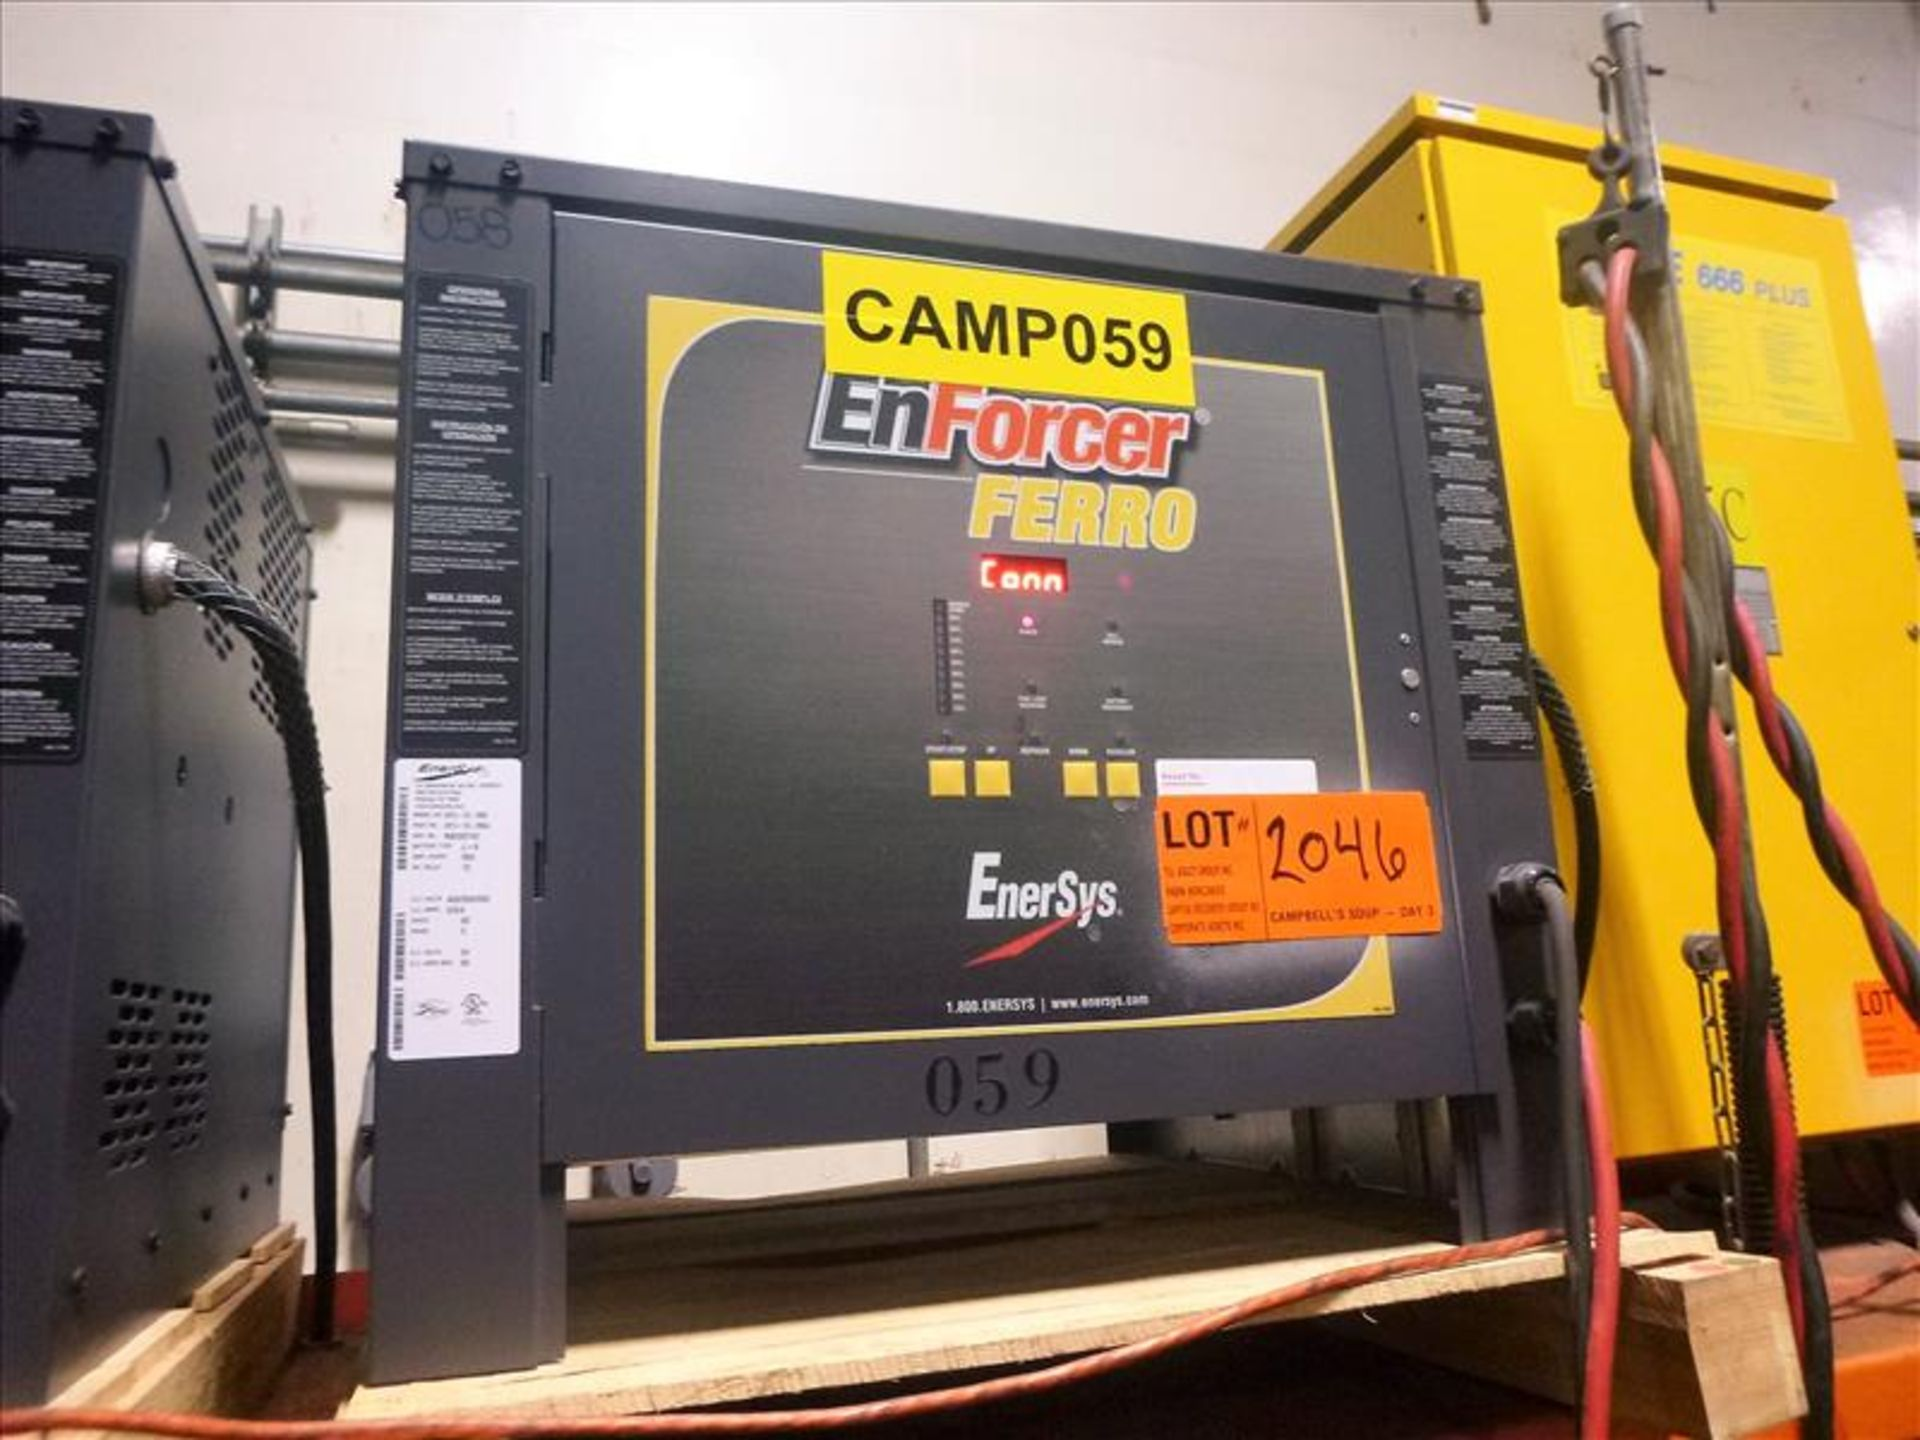 Lot 2046 - Enforcer Ferro battery charger, 24V [Material Handling]